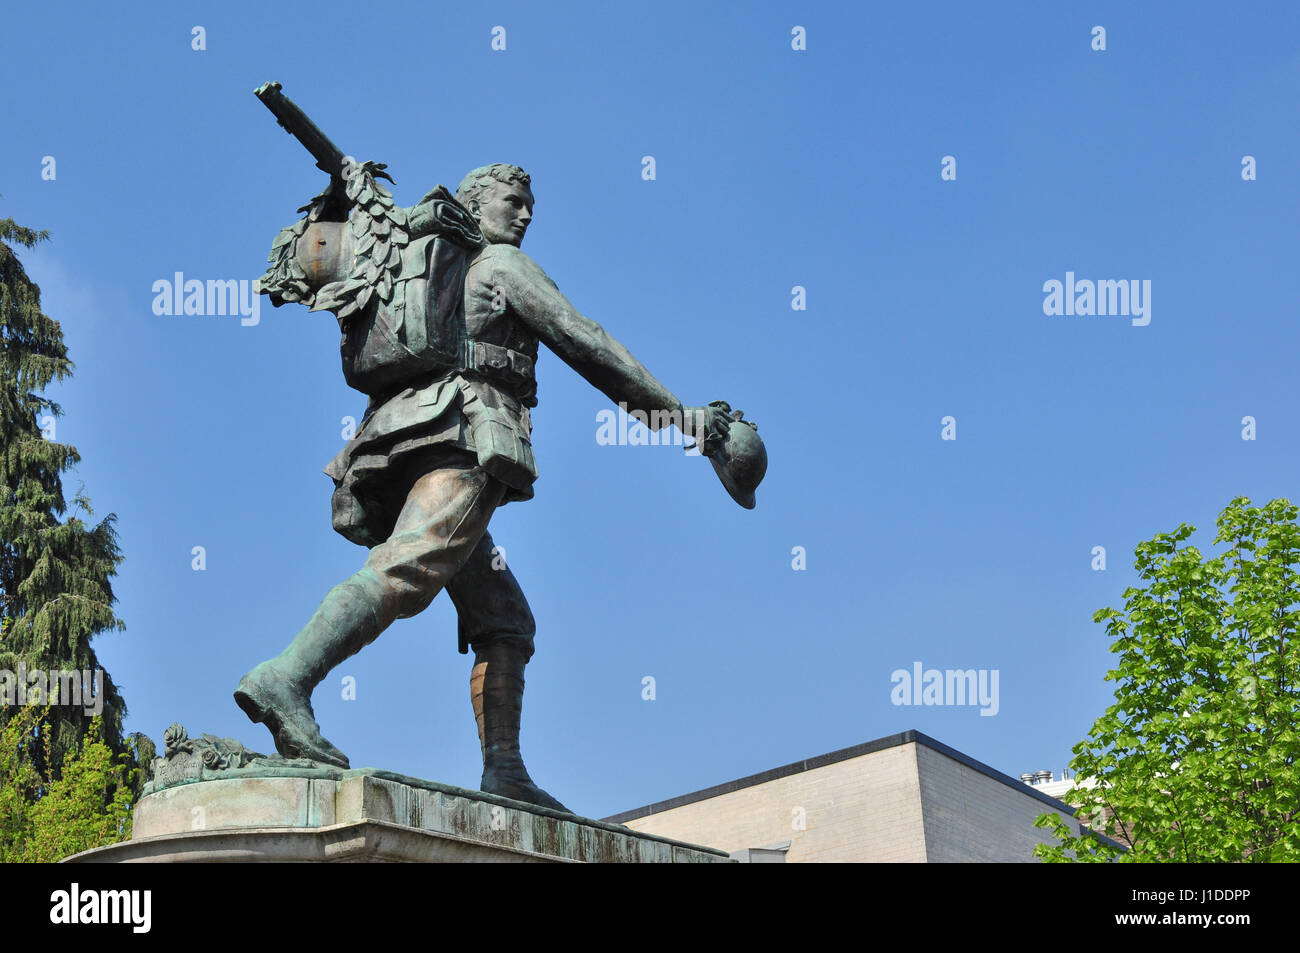 War Memorial at the junction of Hills Road and Station Road, Cambridge, England, UK - Stock Image